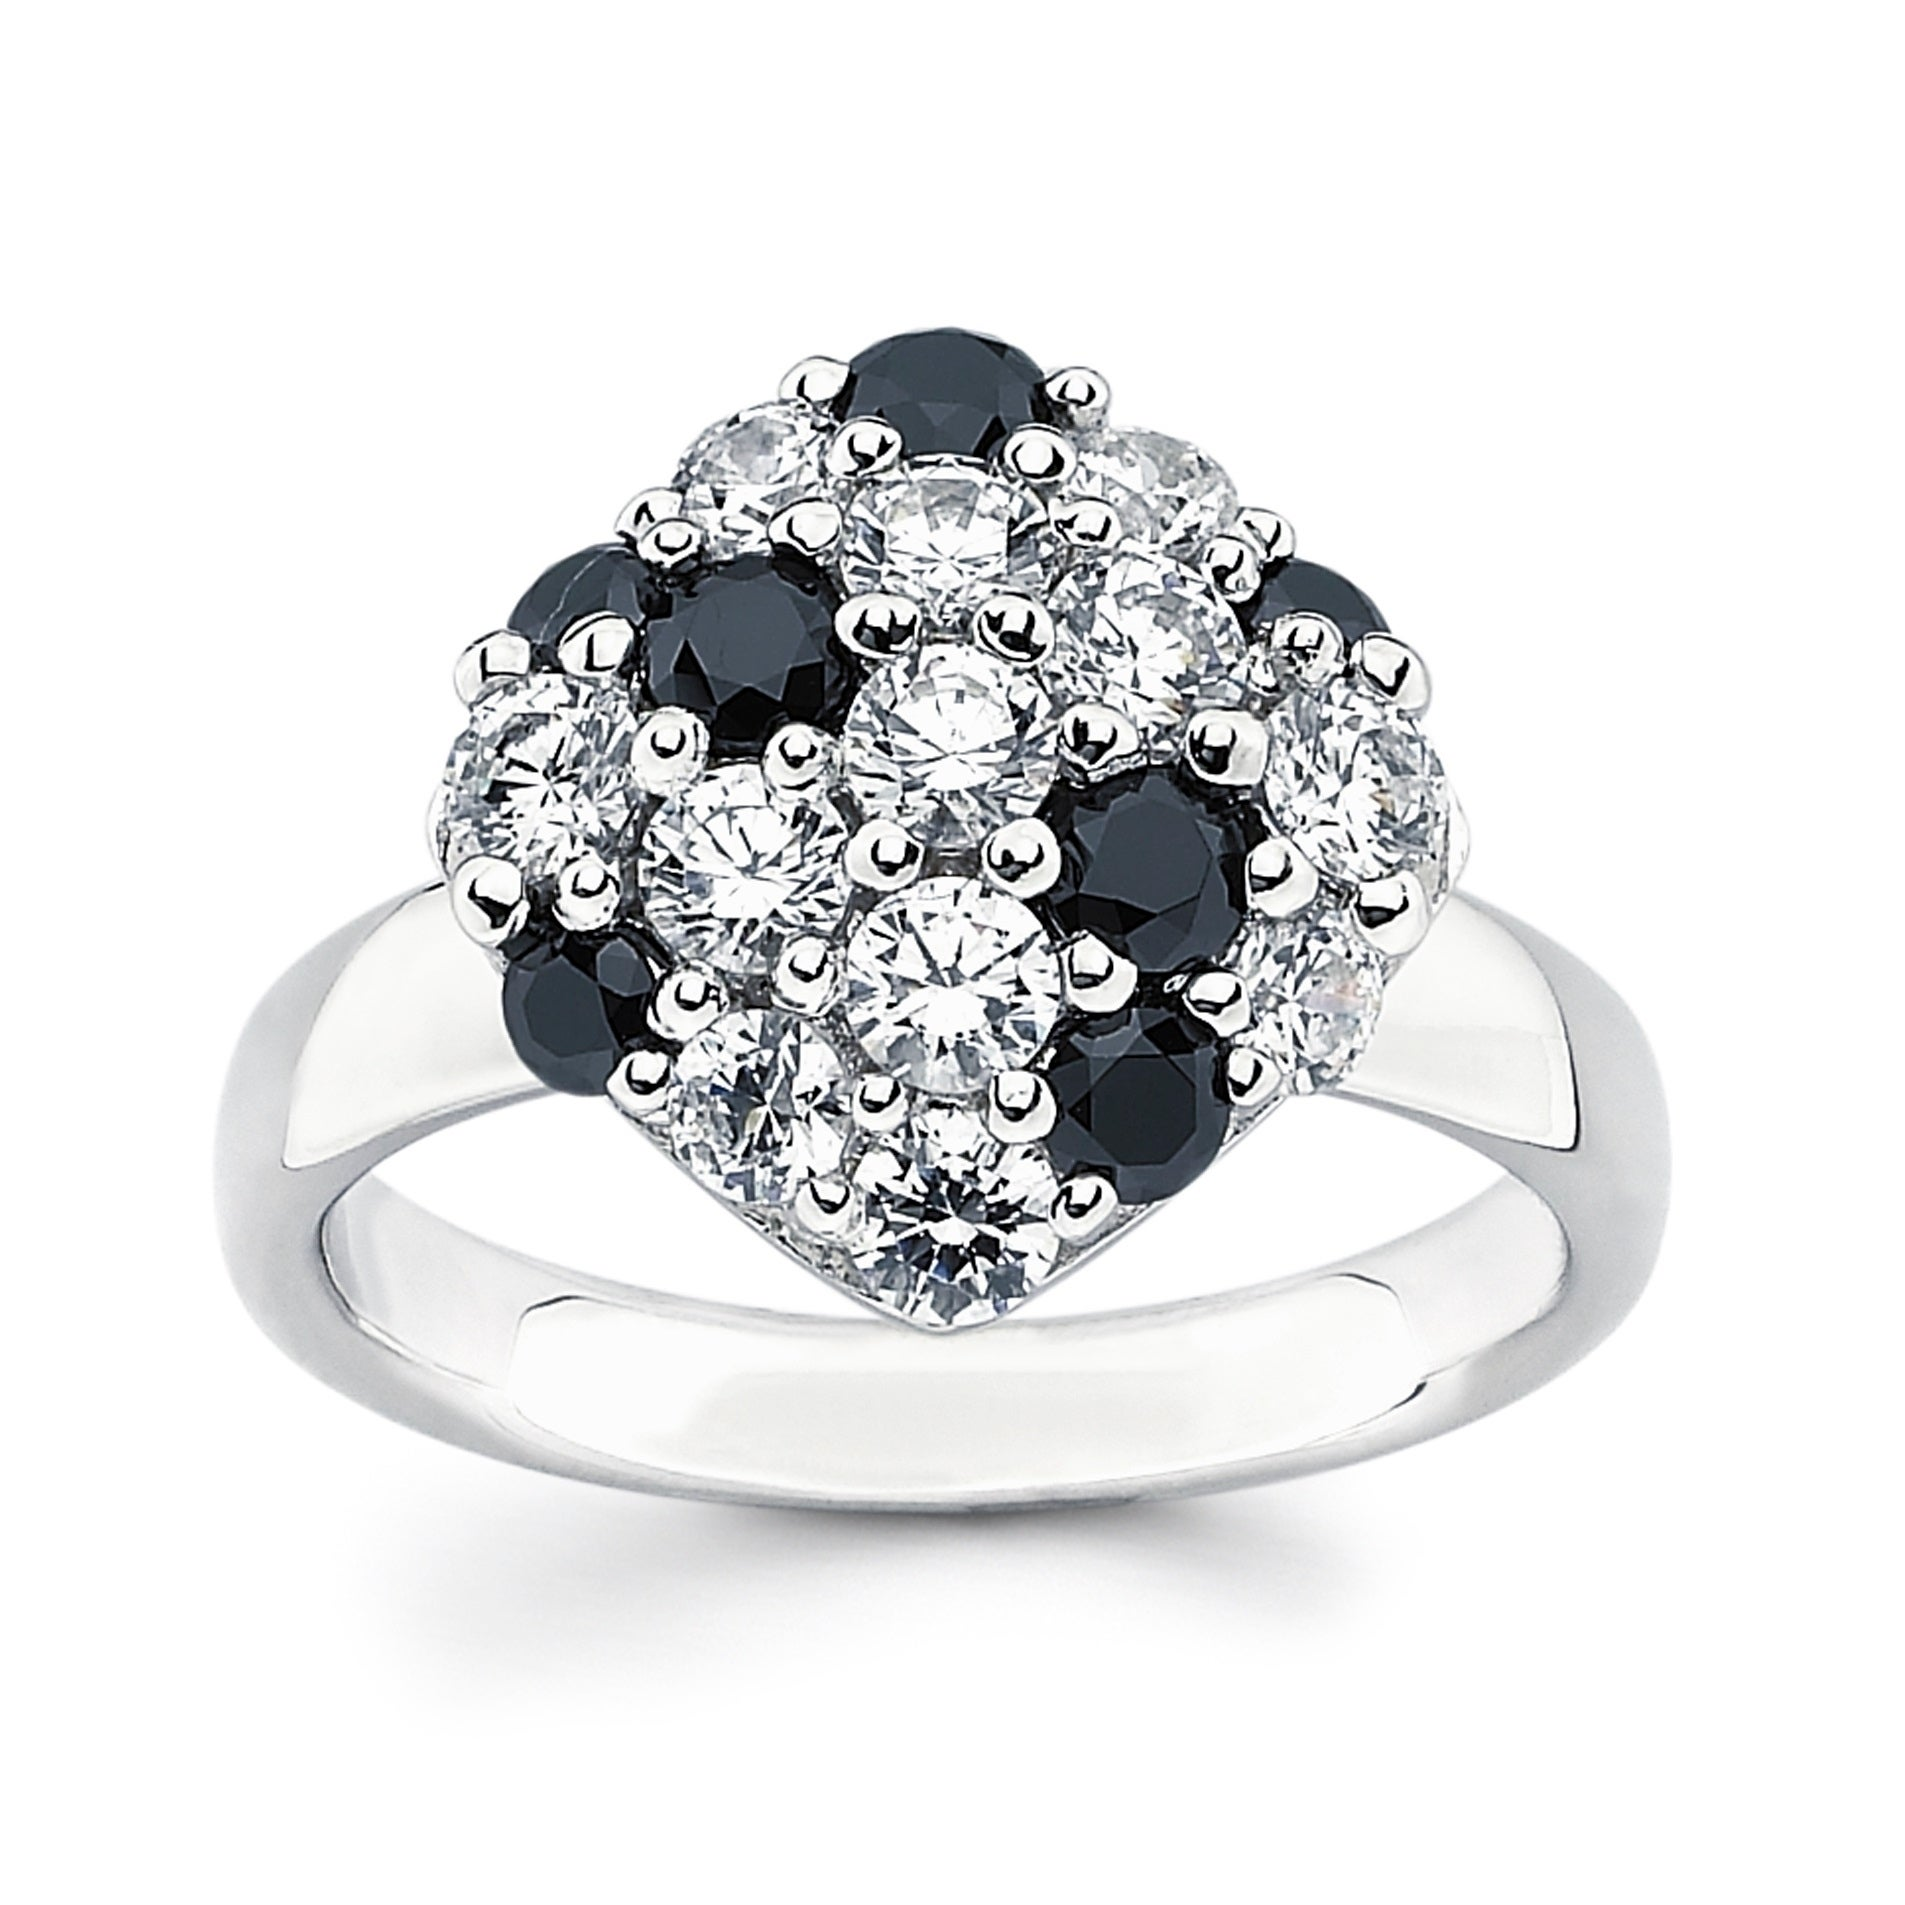 acddaa232 Shop Sterling Silver Black and White Swarovski Zirconia Cushion Cluster Ring  - On Sale - Free Shipping Today - Overstock - 21018568